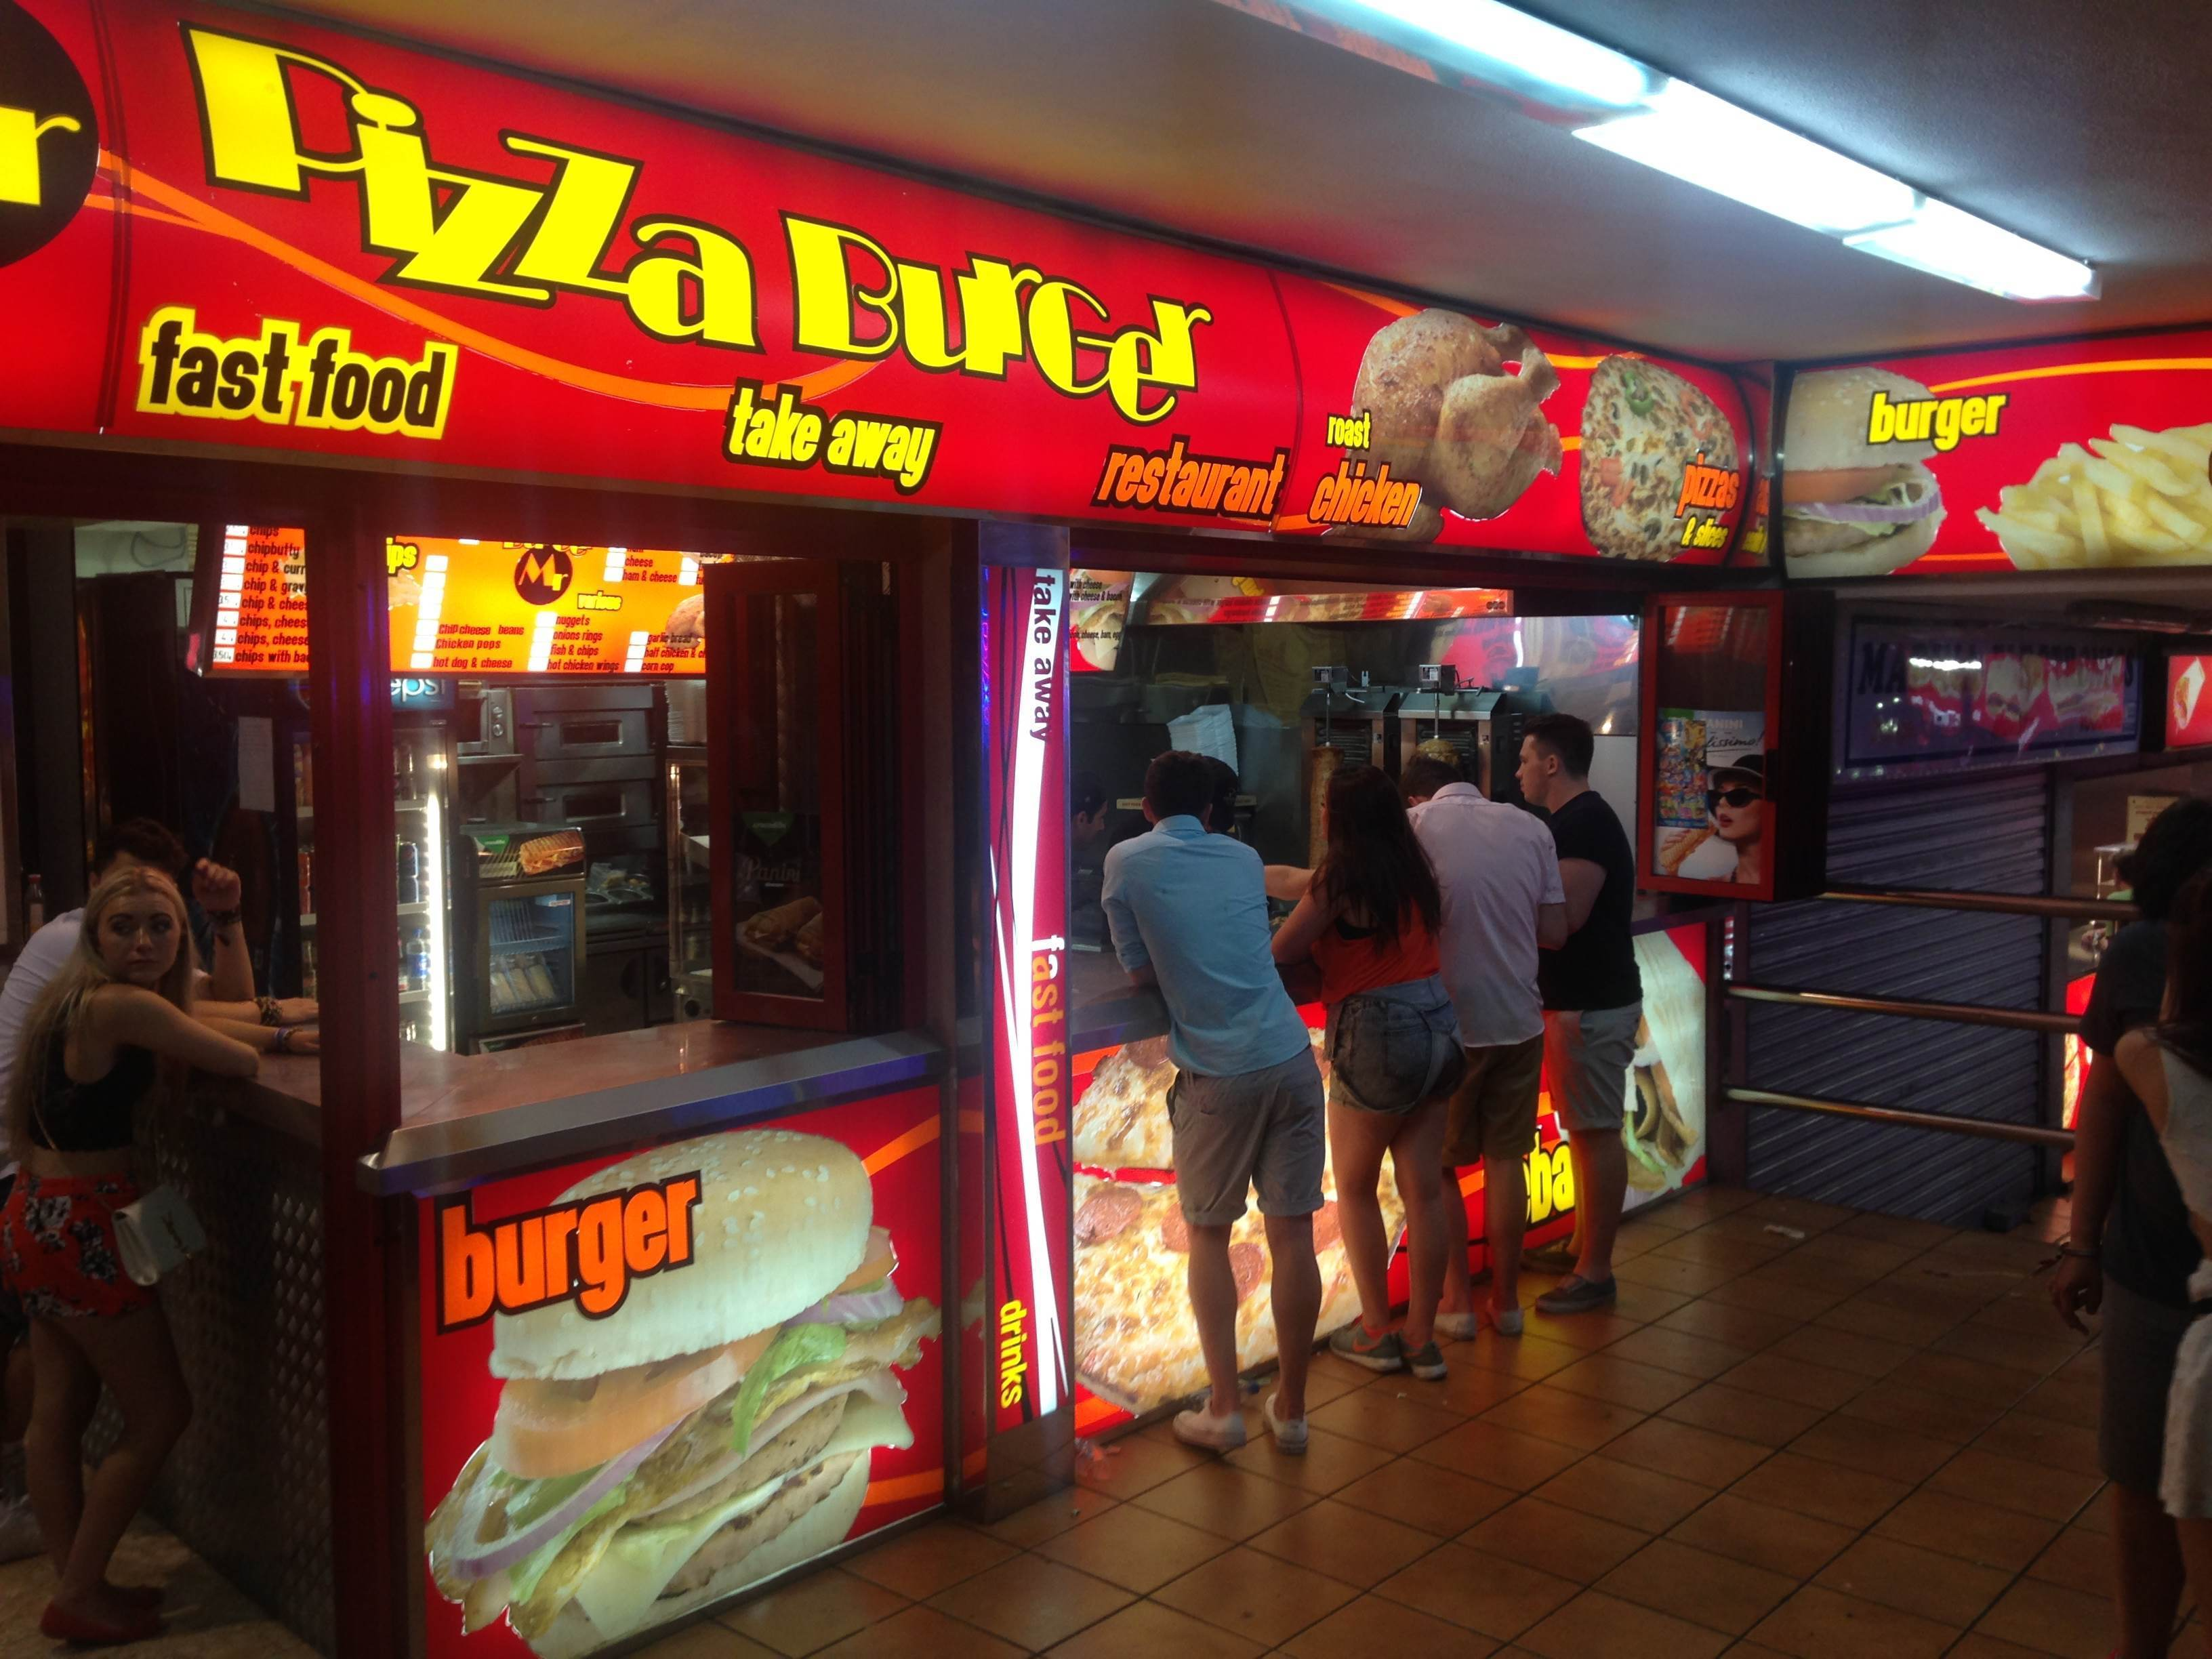 Pizza Burger in Magaluf